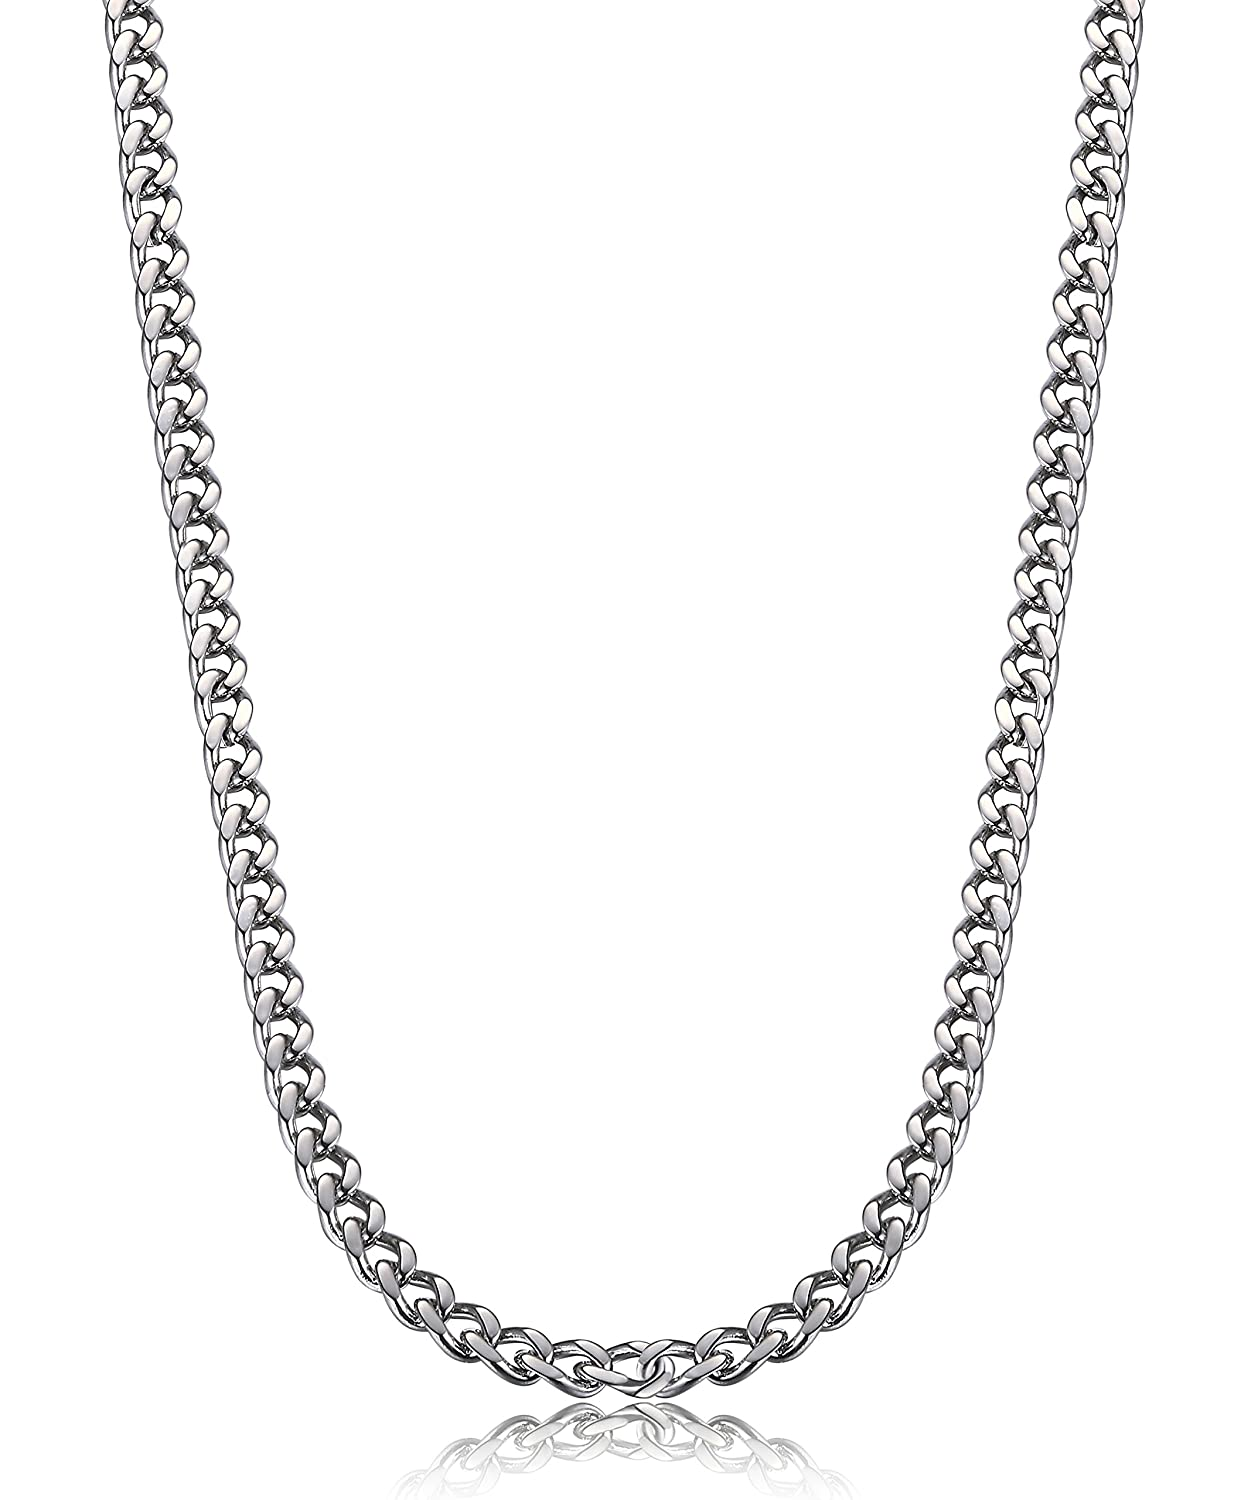 FIBO STEEL 3.5-6 mm Stainless Steel Mens Womens Necklace Curb Link Chain, 16-30 inches